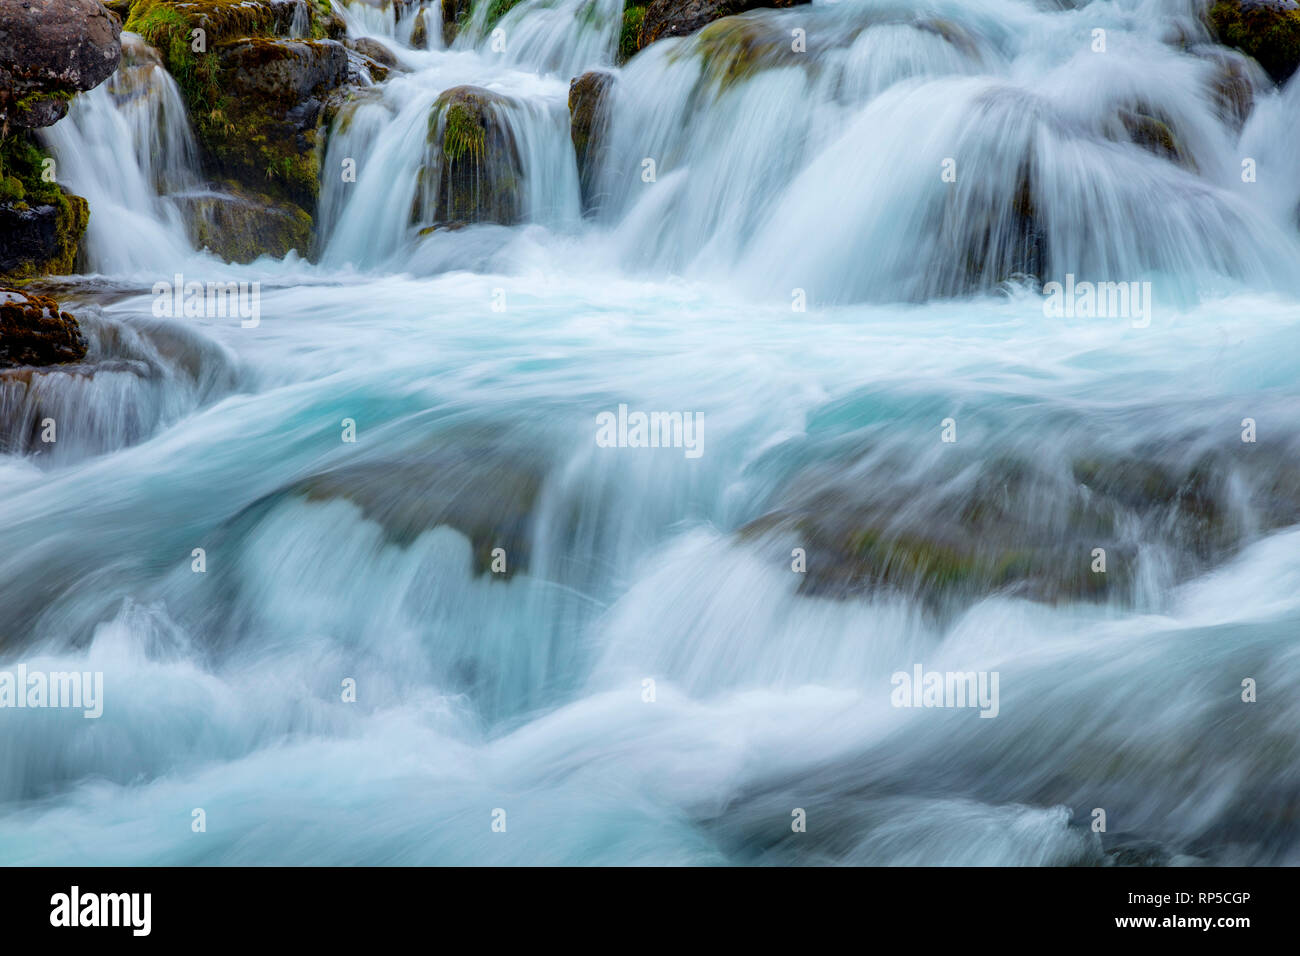 Whitewater rapids beneath Dynjandi waterfall. Westfjords, Iceland. - Stock Image